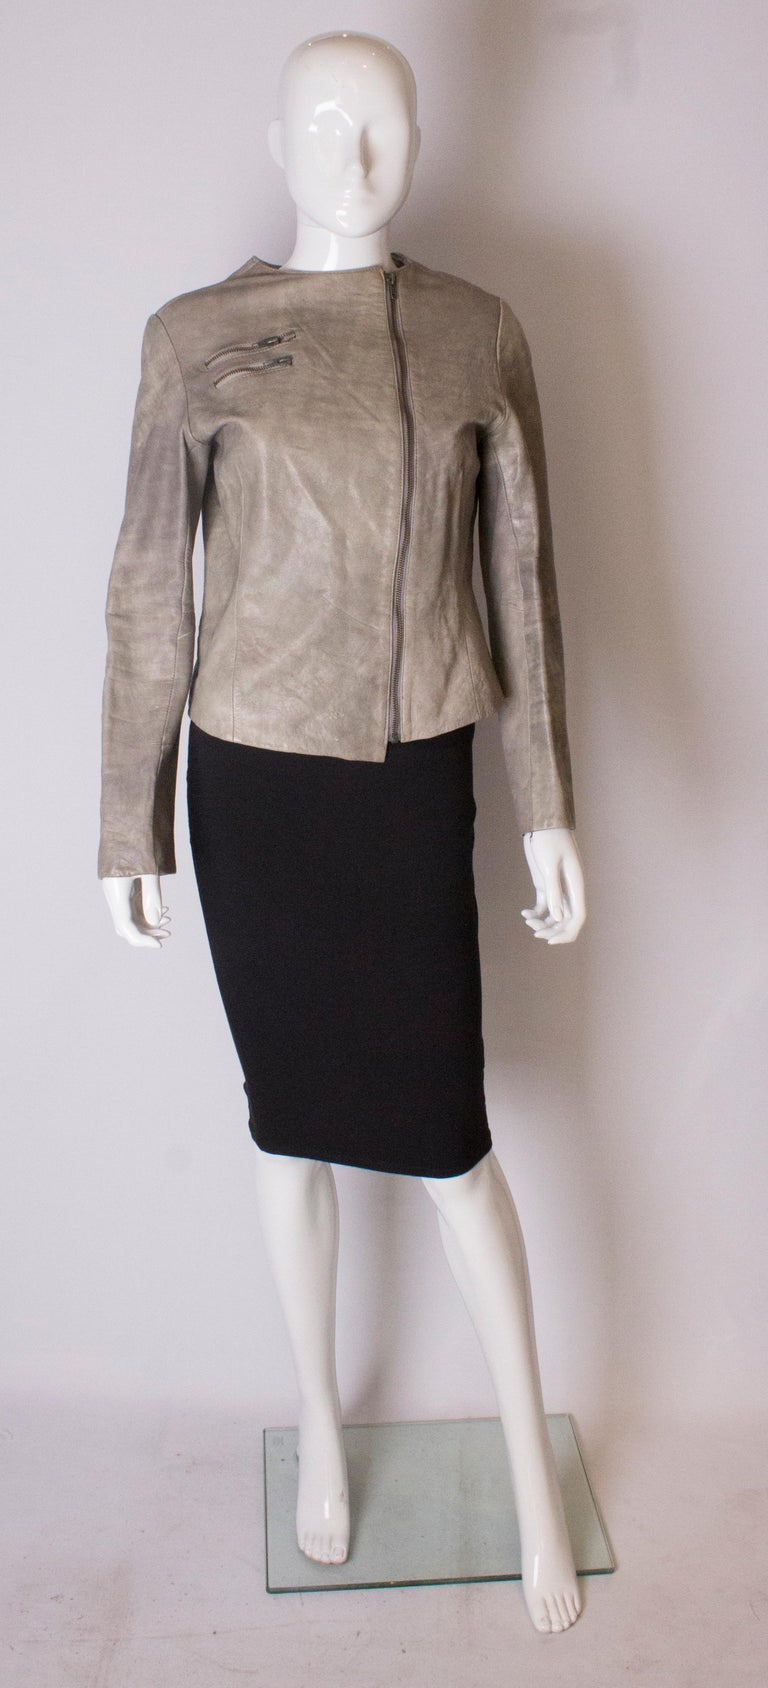 A great jacket for fall. In a soft grey colour, this jacket has a round neckline, zip opening and two zip pockets on the front. It is fully lined.